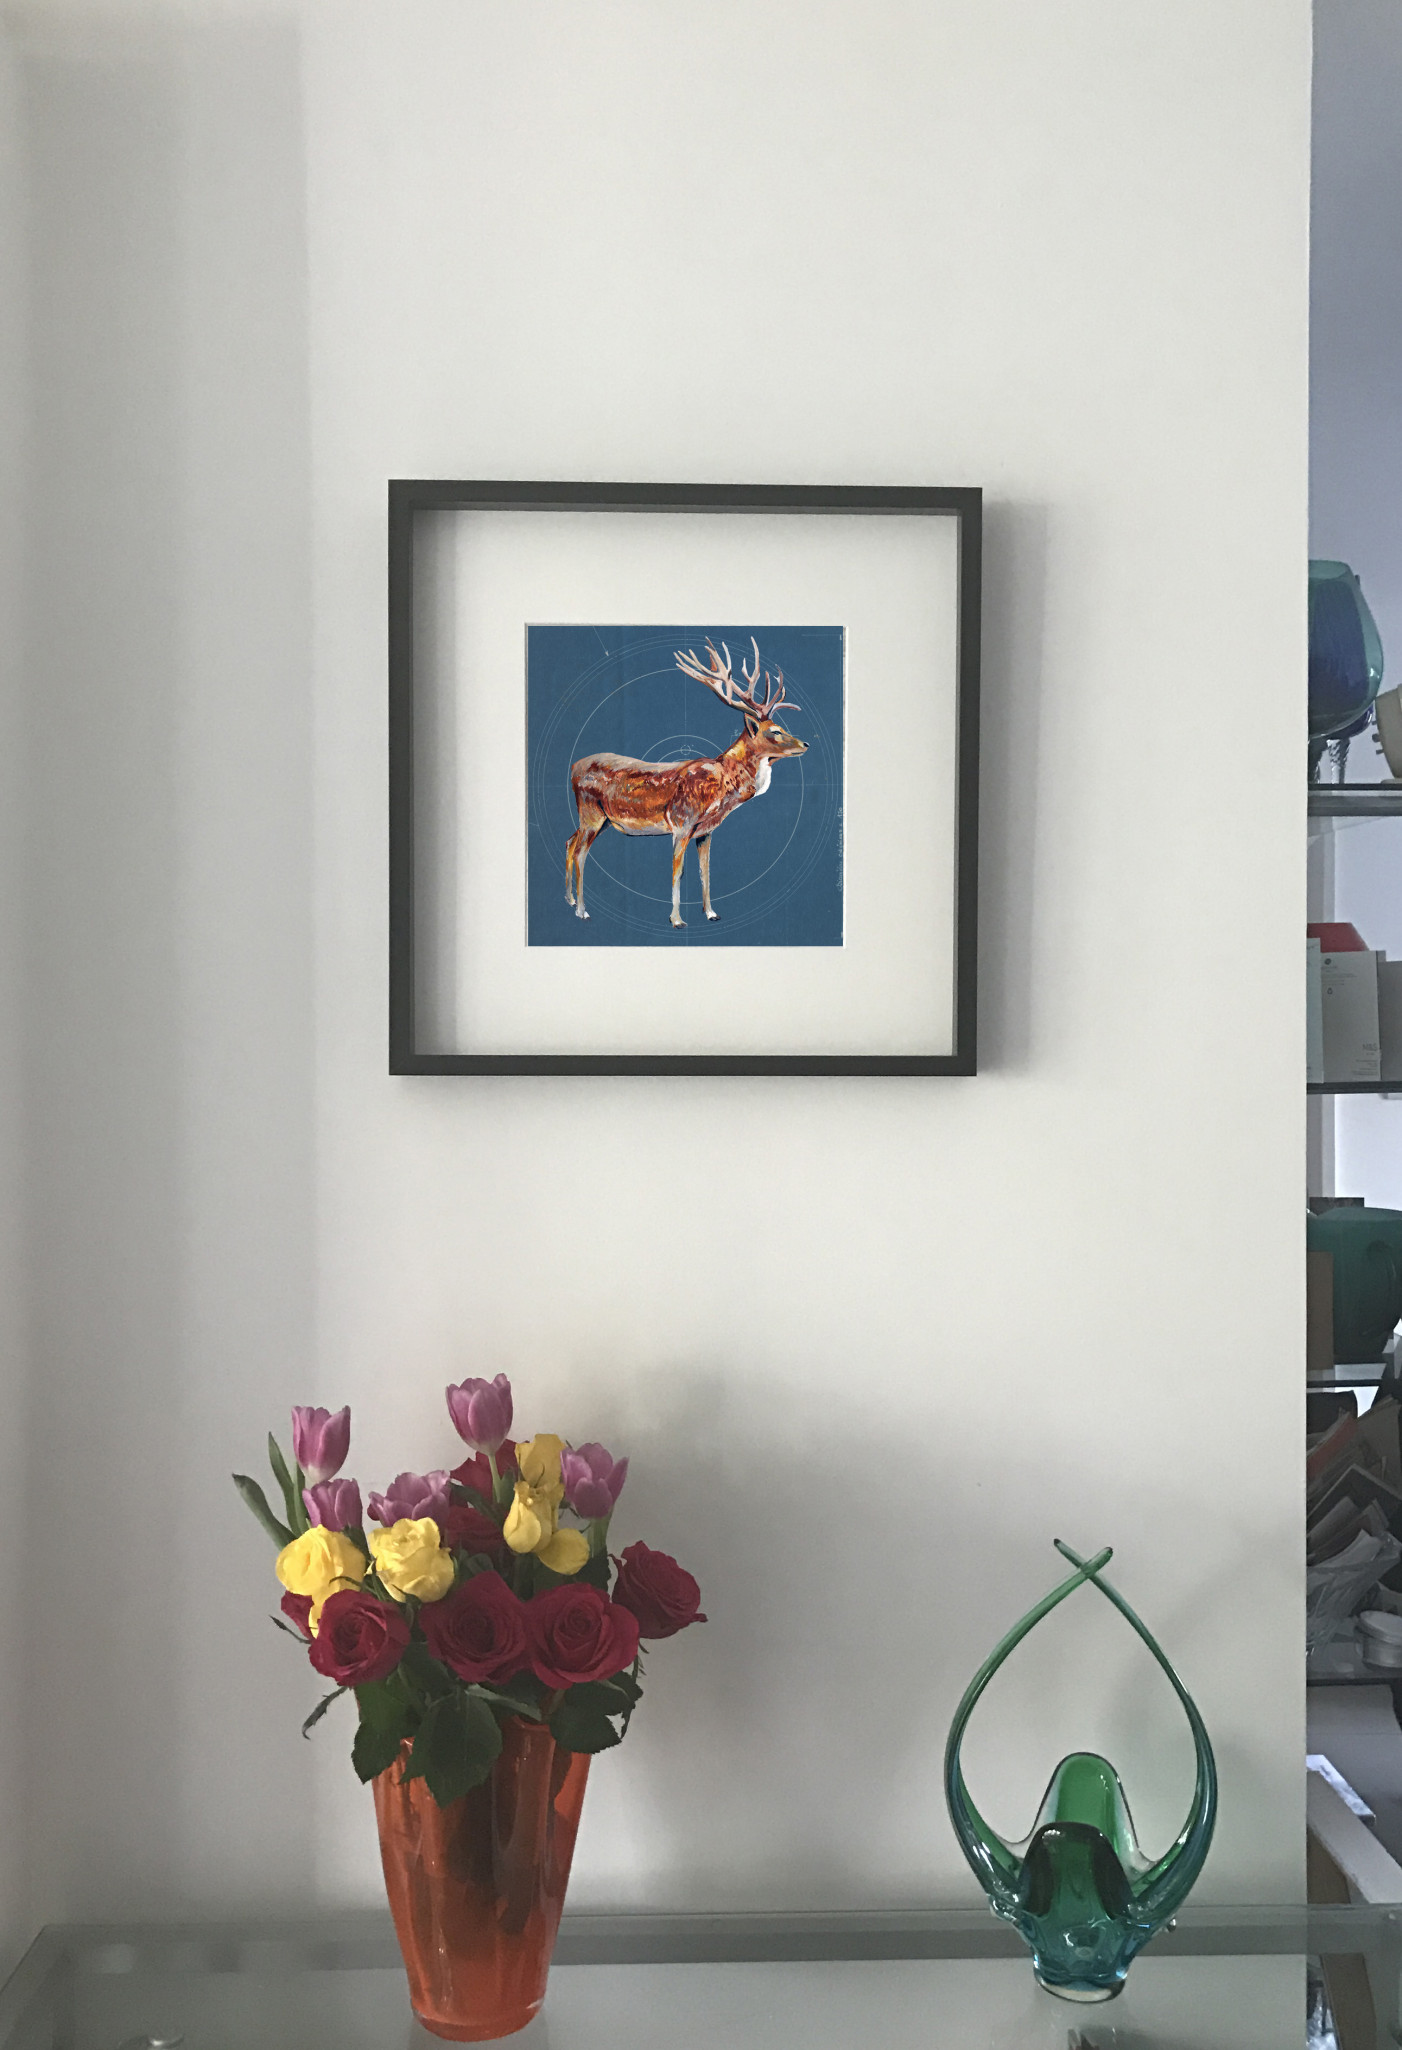 Stag on blueprint ltd edition print degreeart the original stag on blueprint ltd edition print malvernweather Choice Image